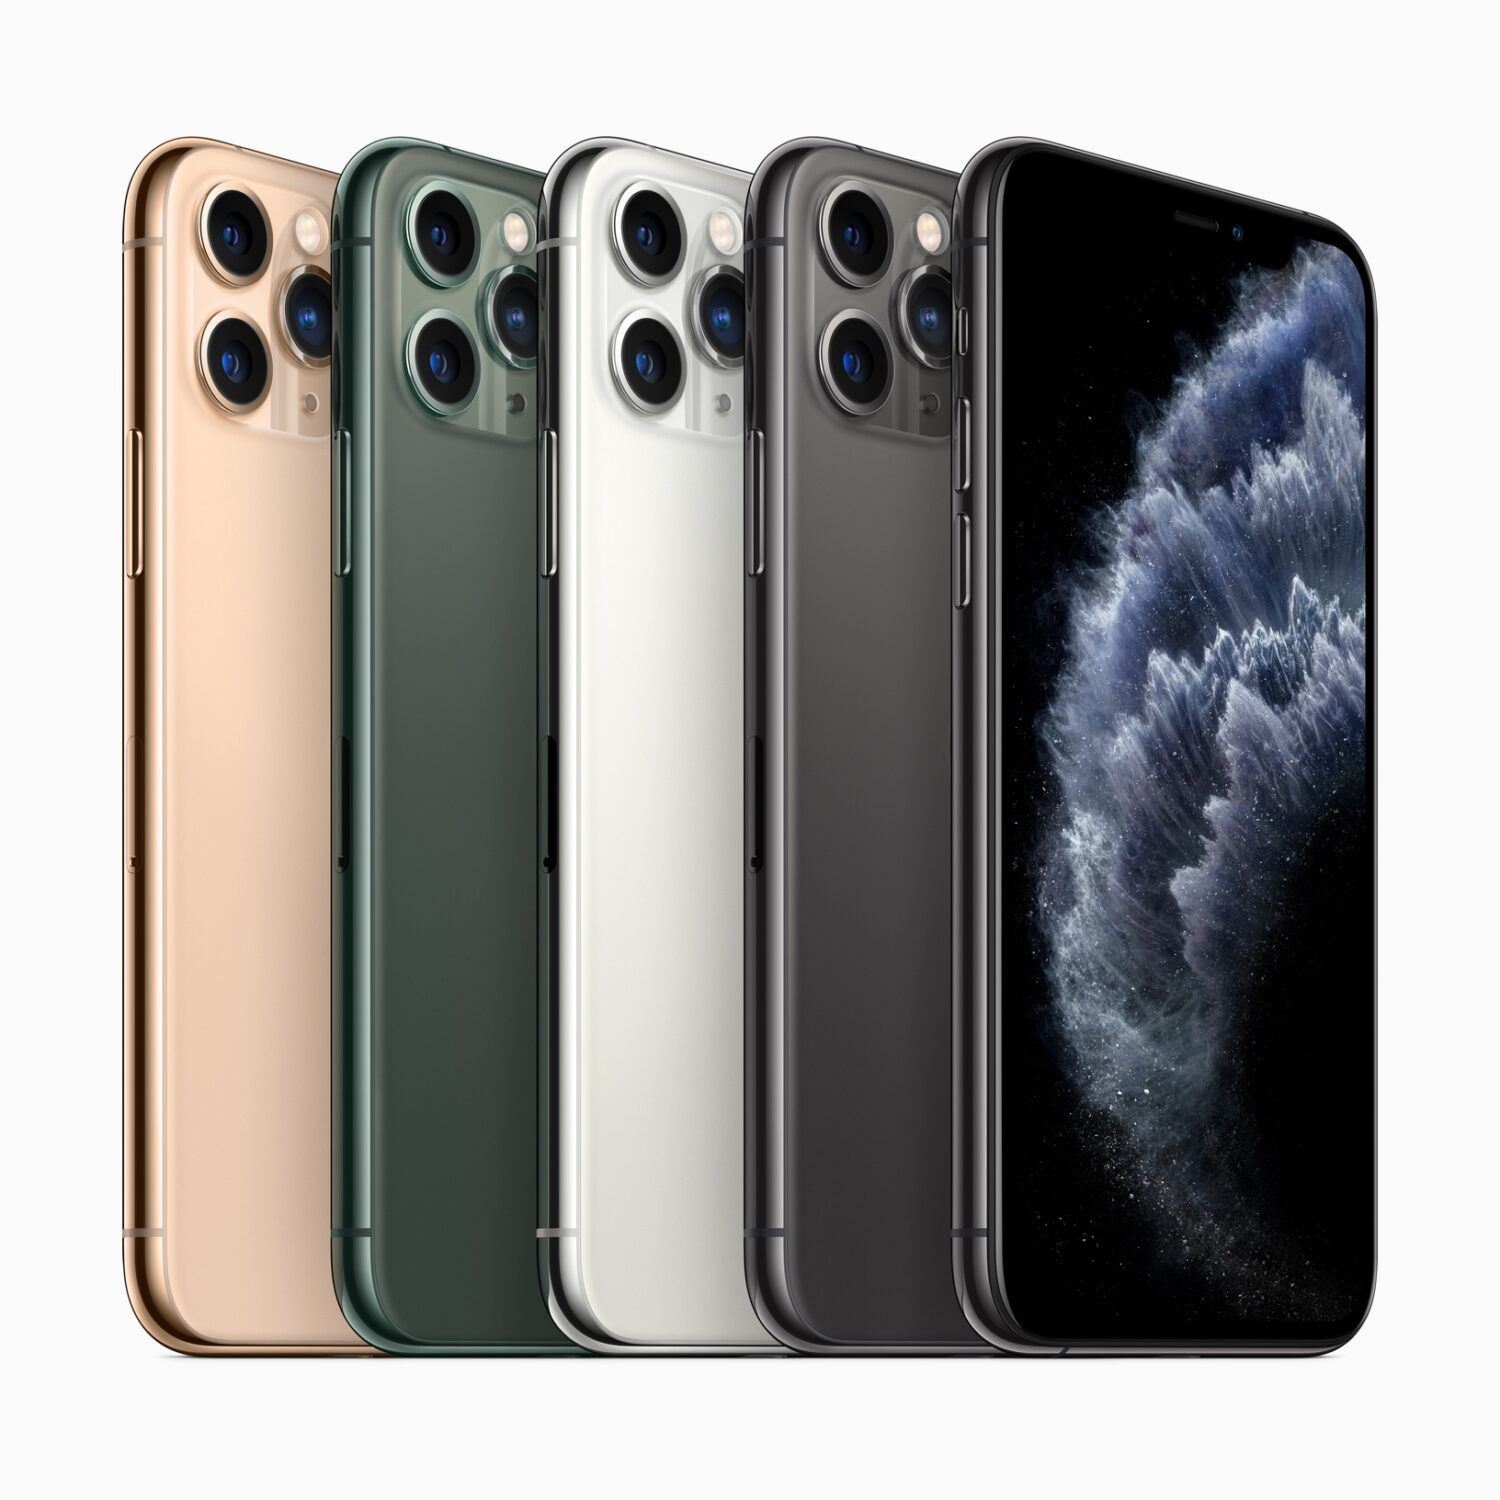 Apple iPhone 11 Pro annonce keynote